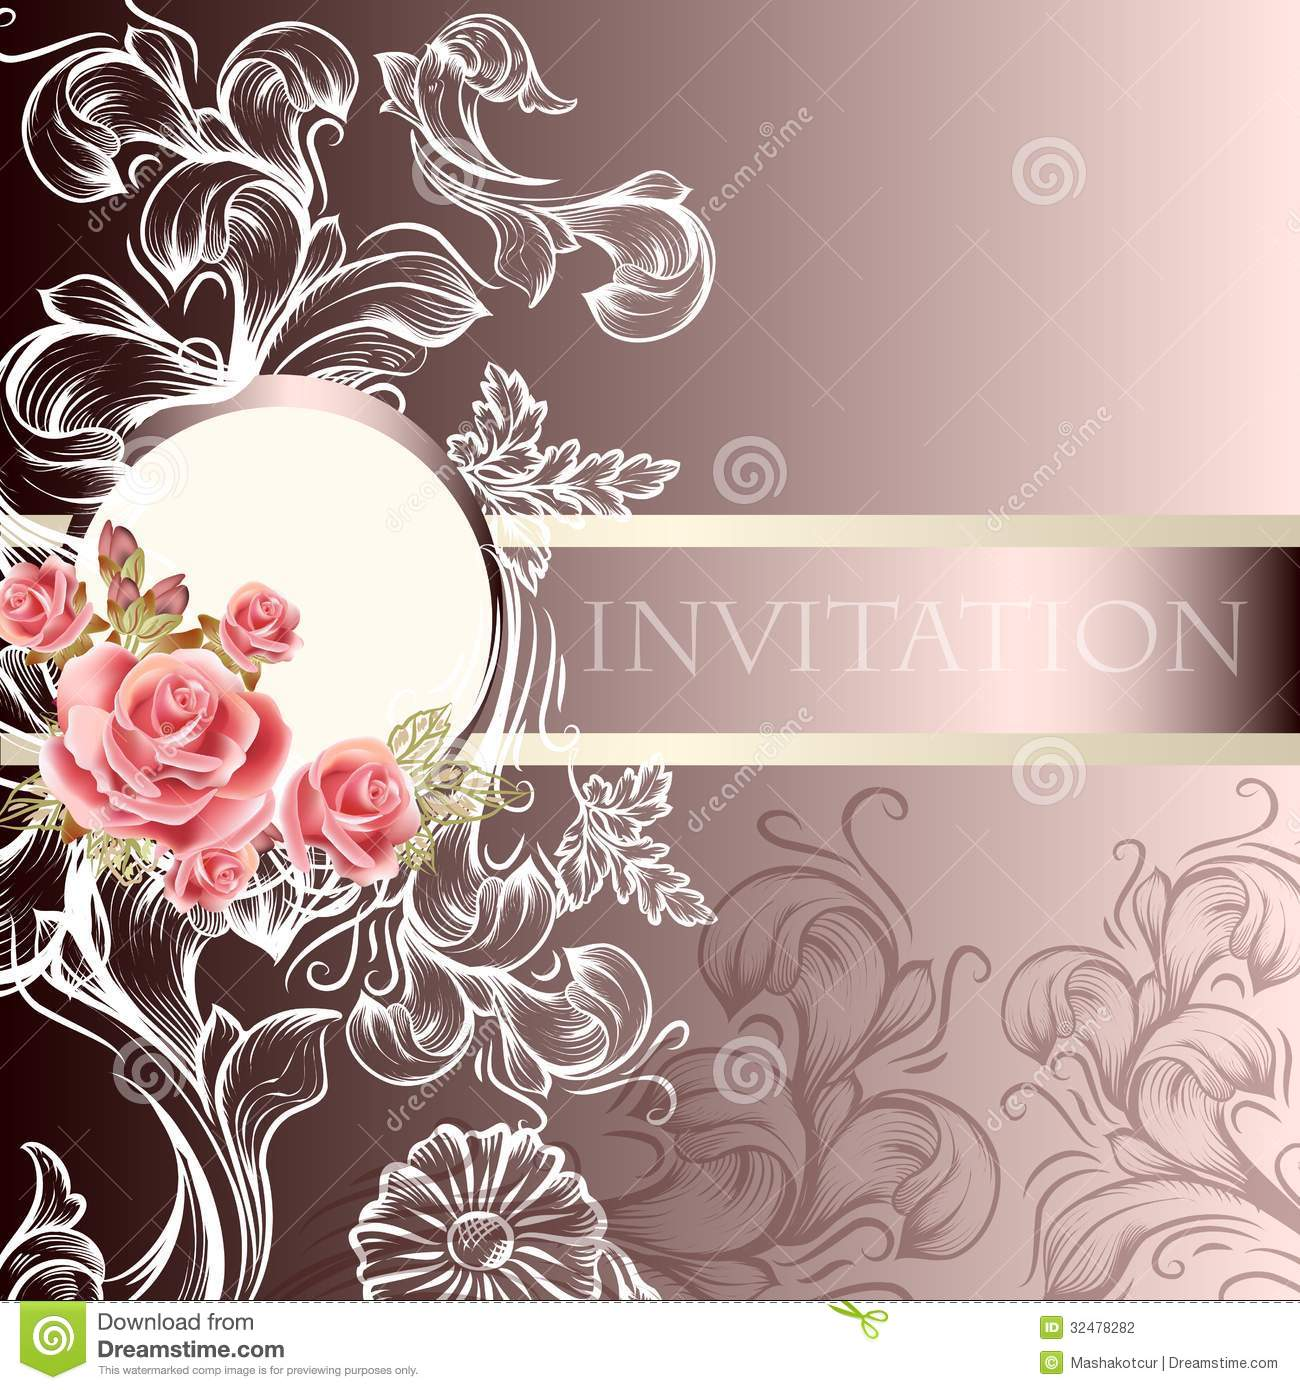 Elegant Wedding Invitation Card In Pastel Tones Stock Vector Illustration Of Flower Butterfly 32478282